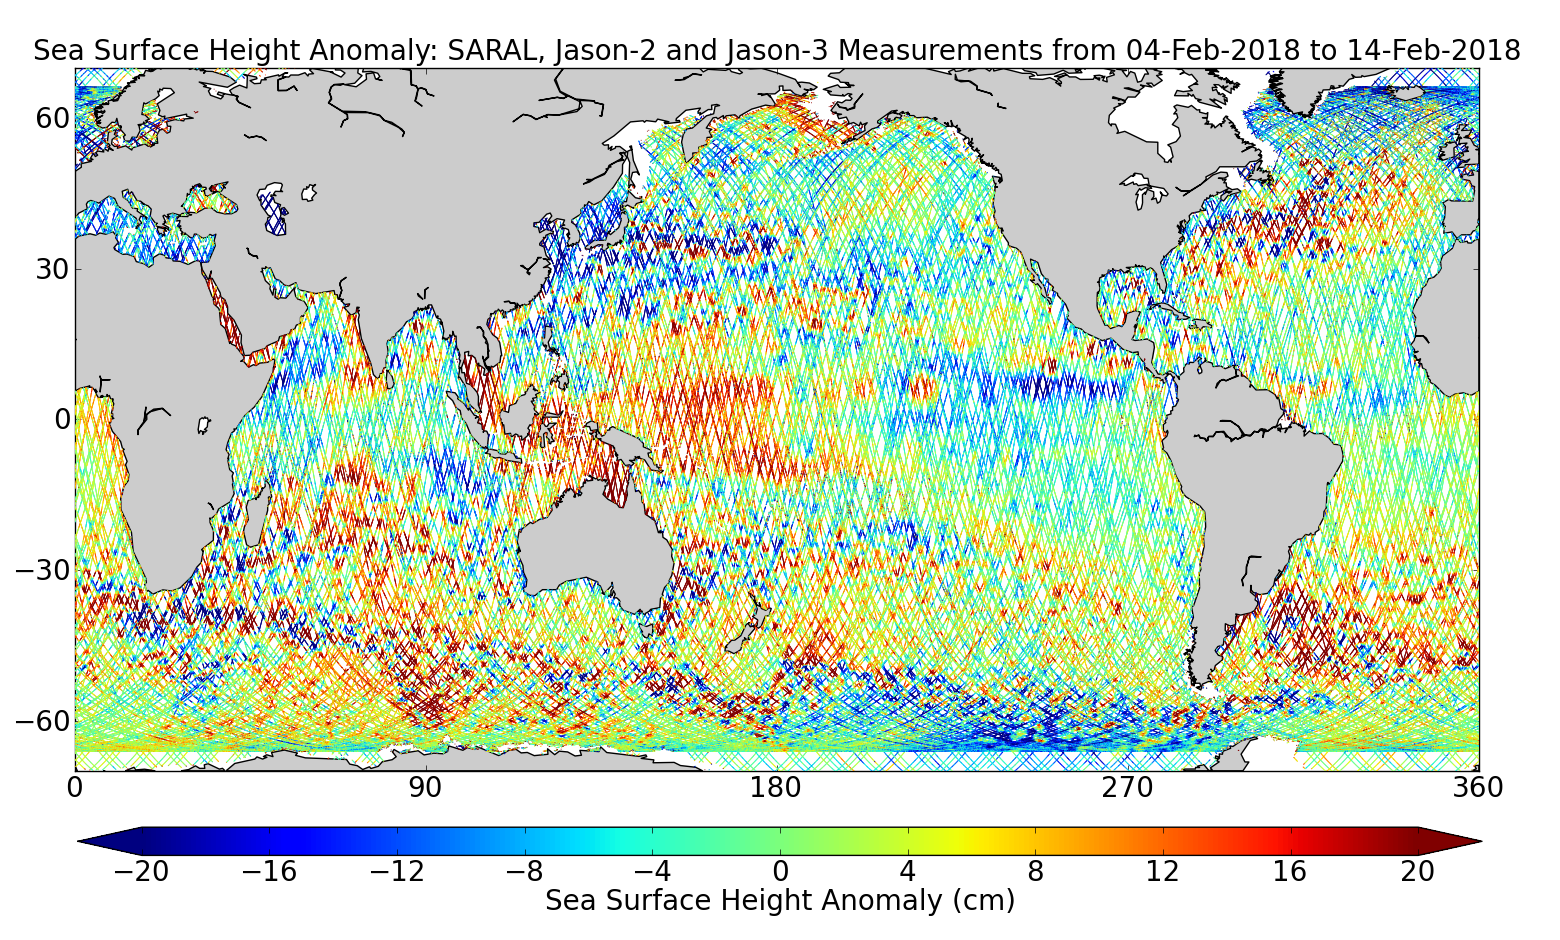 Sea Surface Height Anomaly: SARAL, Jason-2 and Jason-3 Measurements from 04-Feb-2018 to 14-Feb-2018